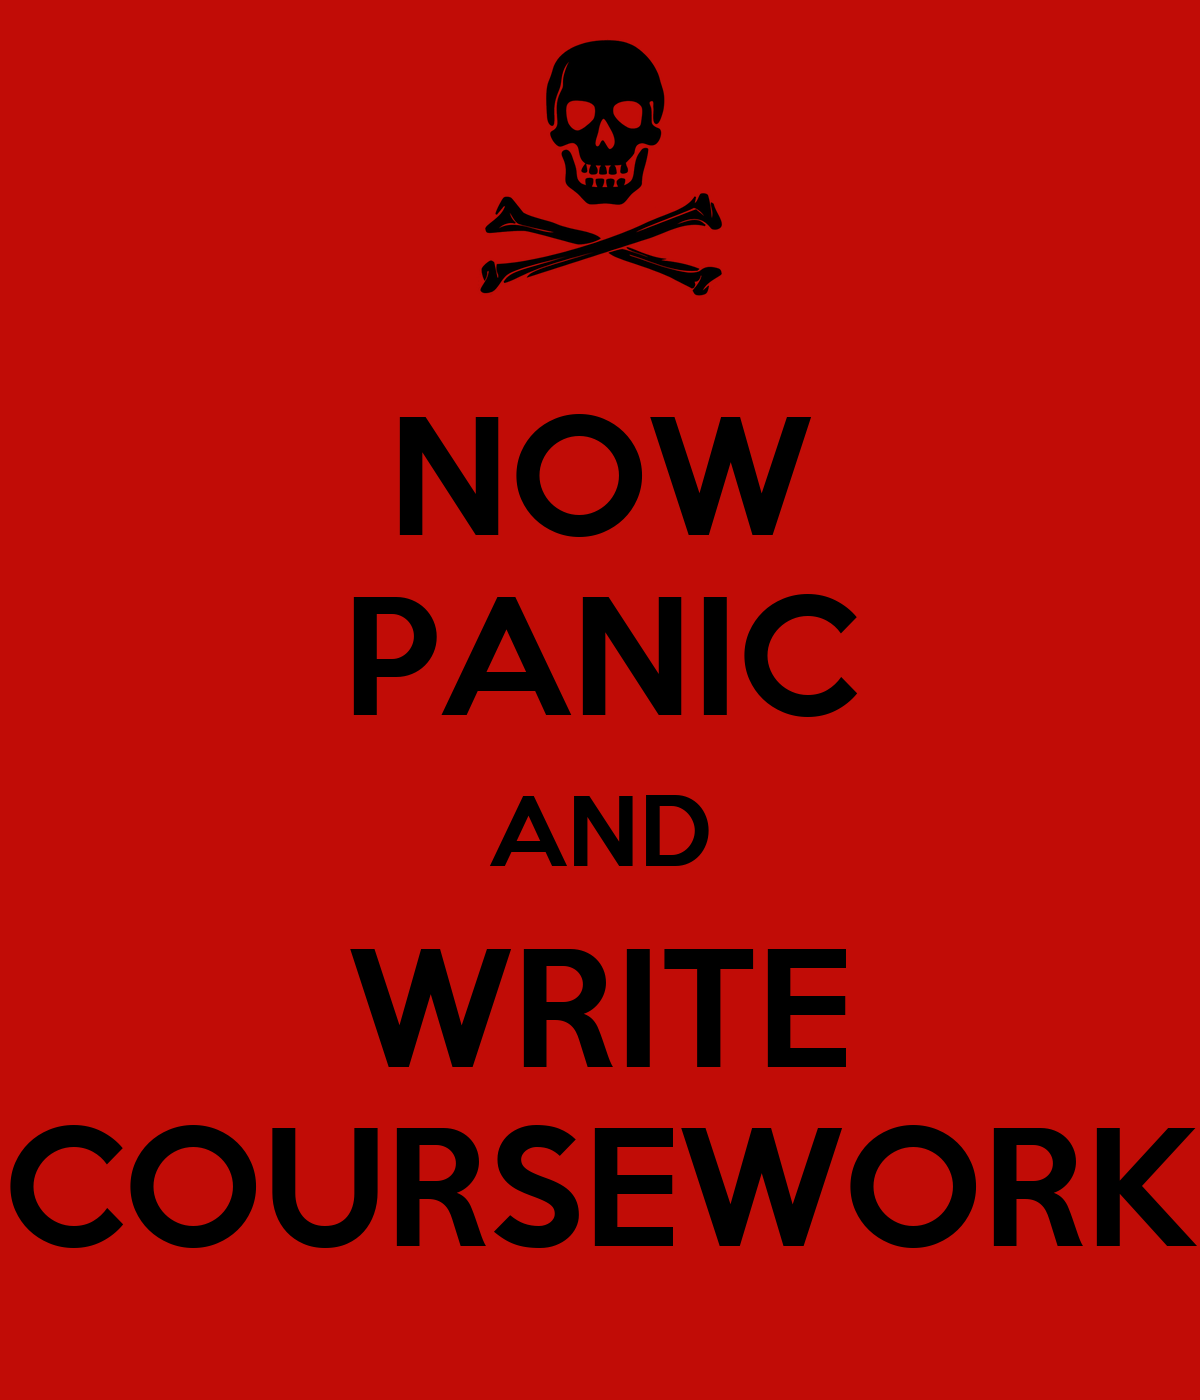 Advices for Coursework Writing